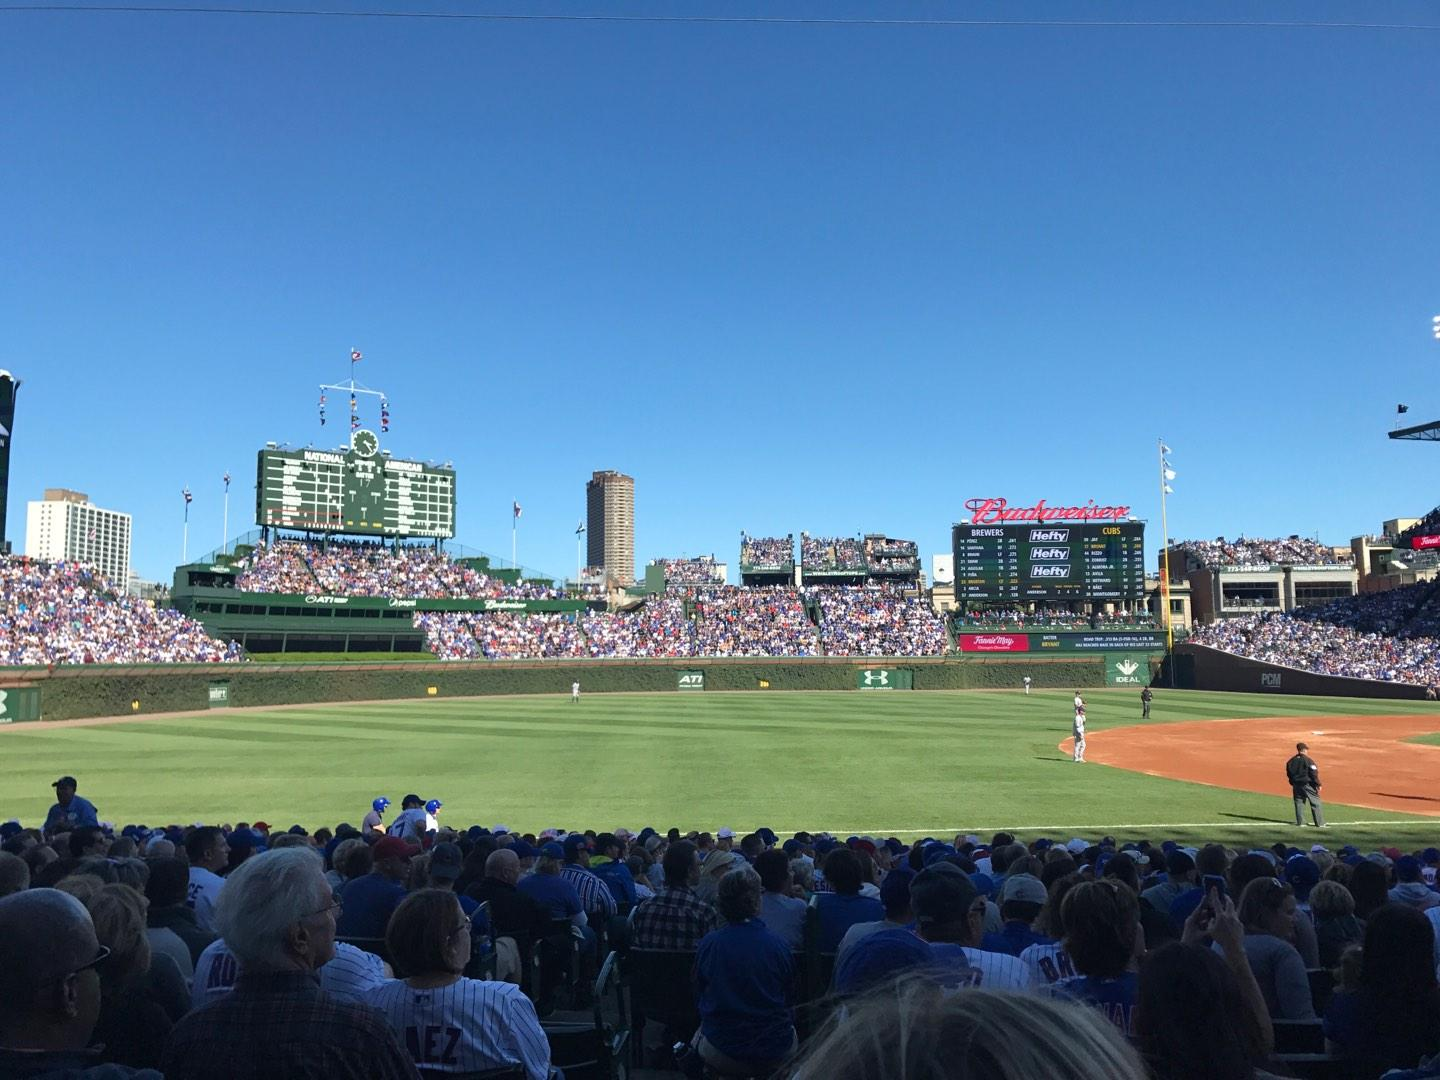 Wrigley Field section 108 row 6 seat 1 - Chicago Cubs vs ...